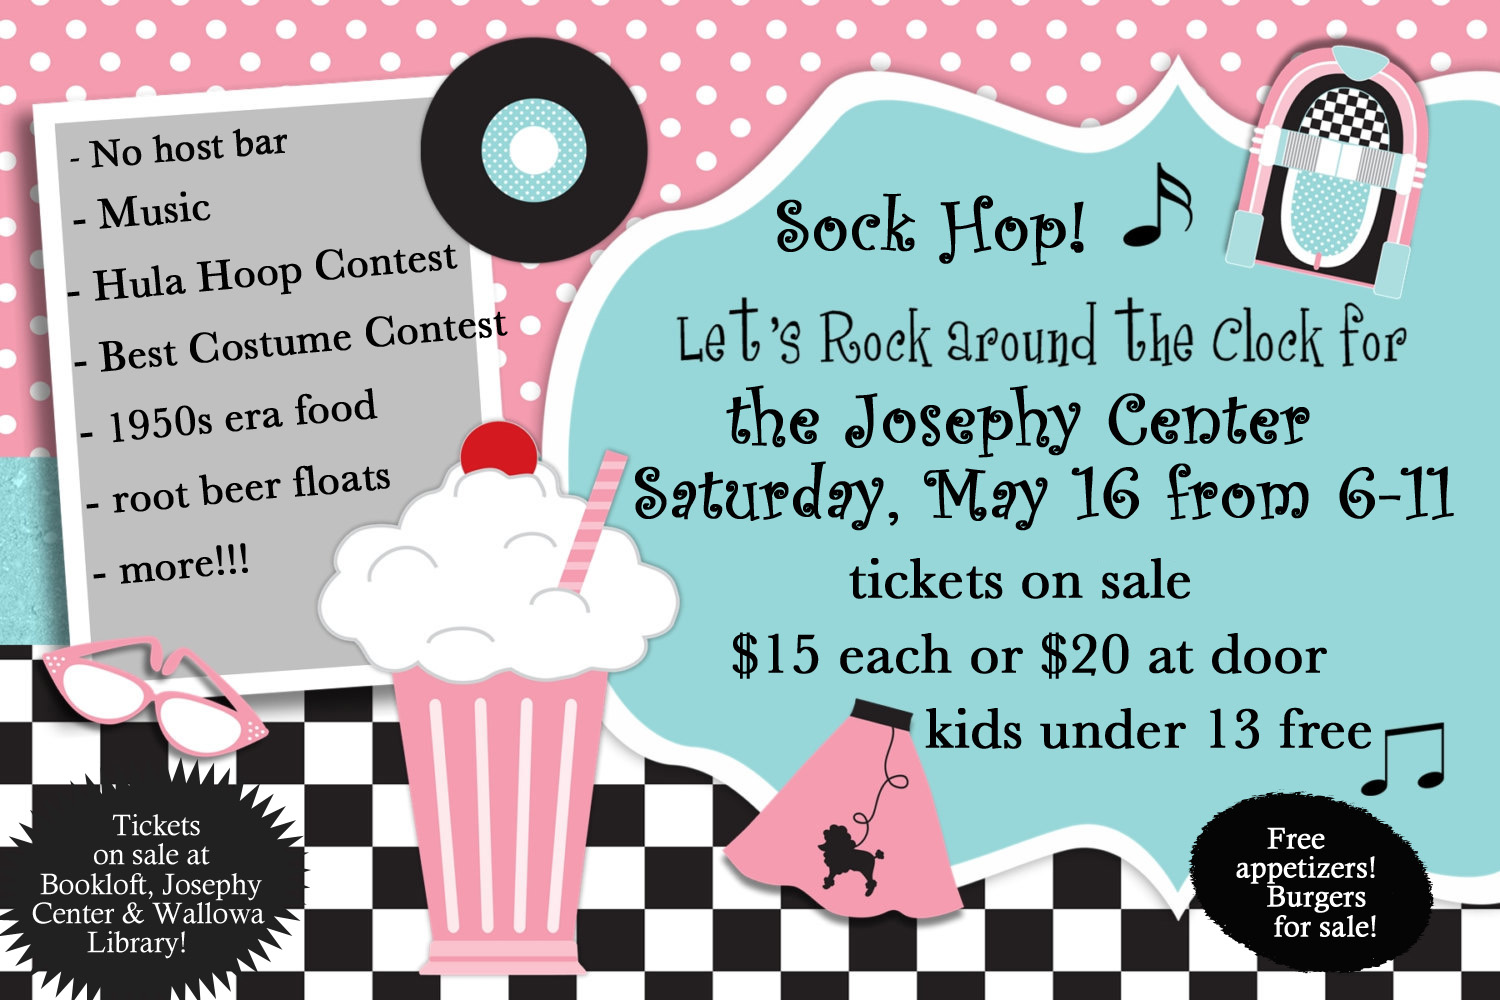 Sock Hop Fundraiser Josephy Center for Arts and Culture